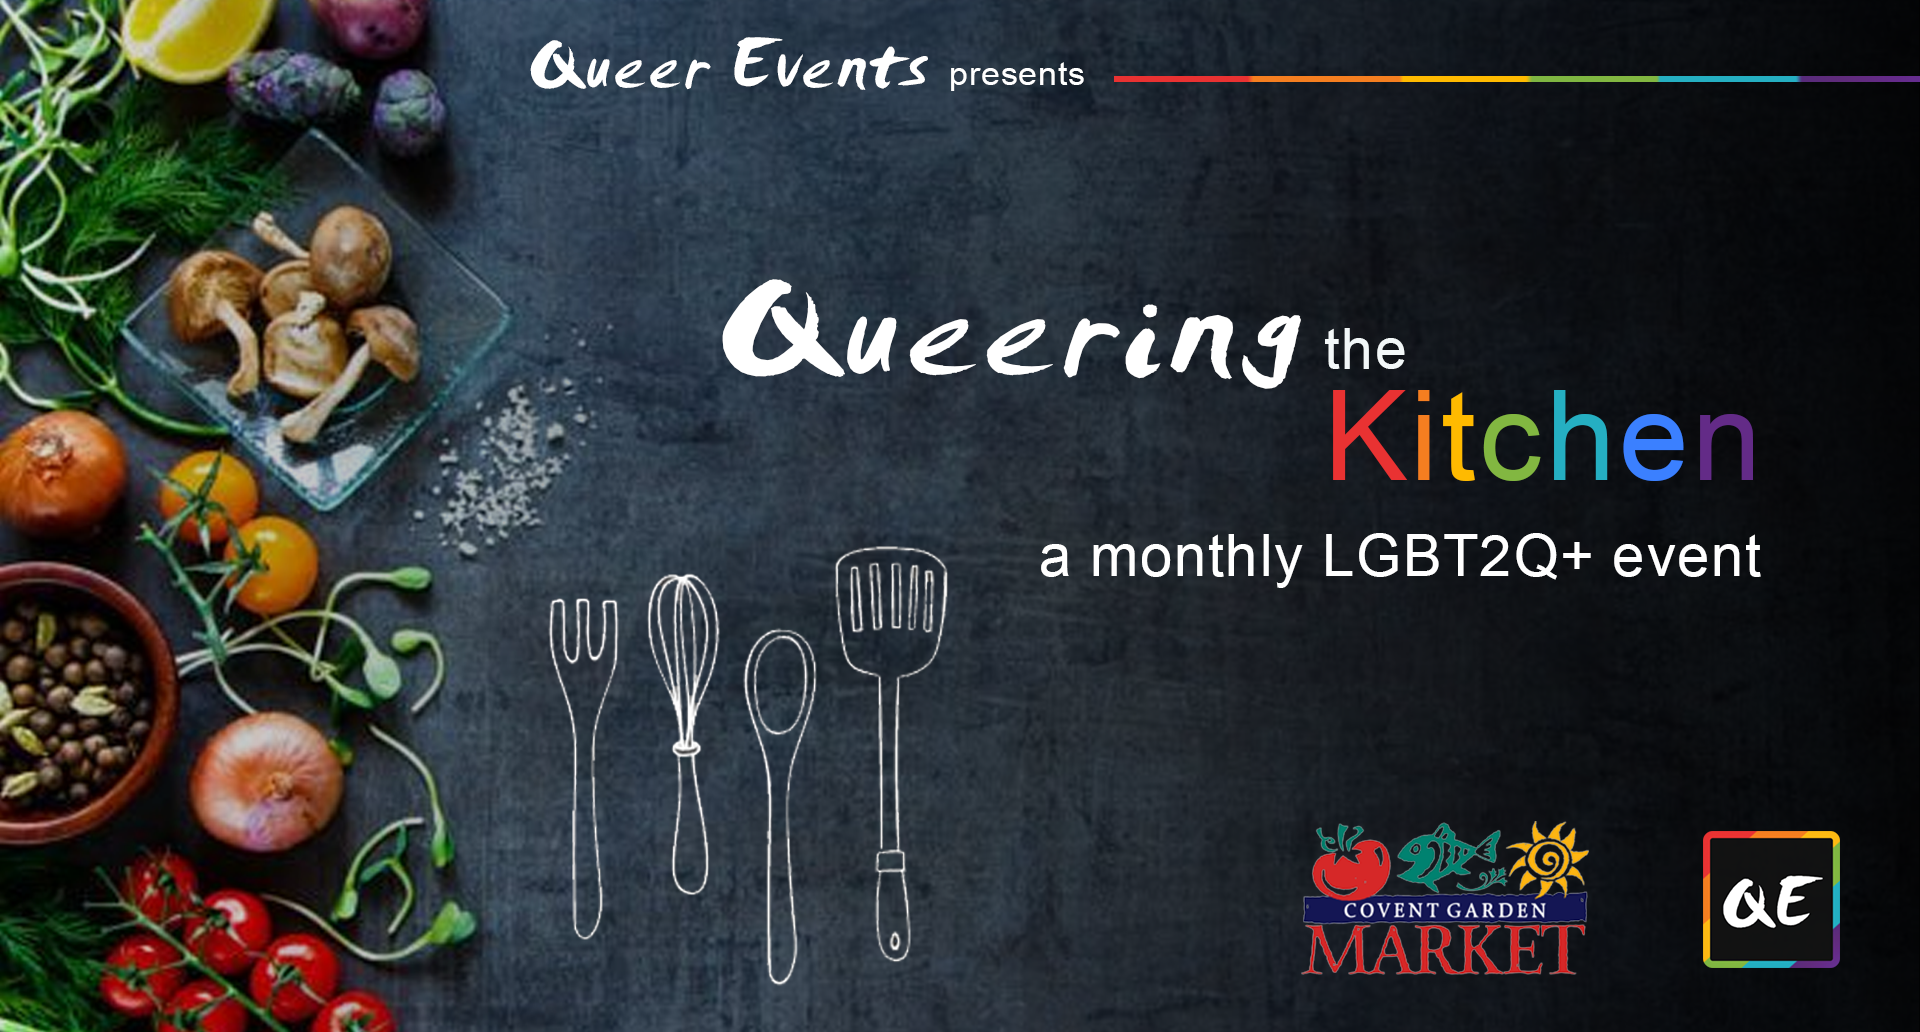 QueerEvents.ca - London event listing - Queering the Kitchen presented by QE